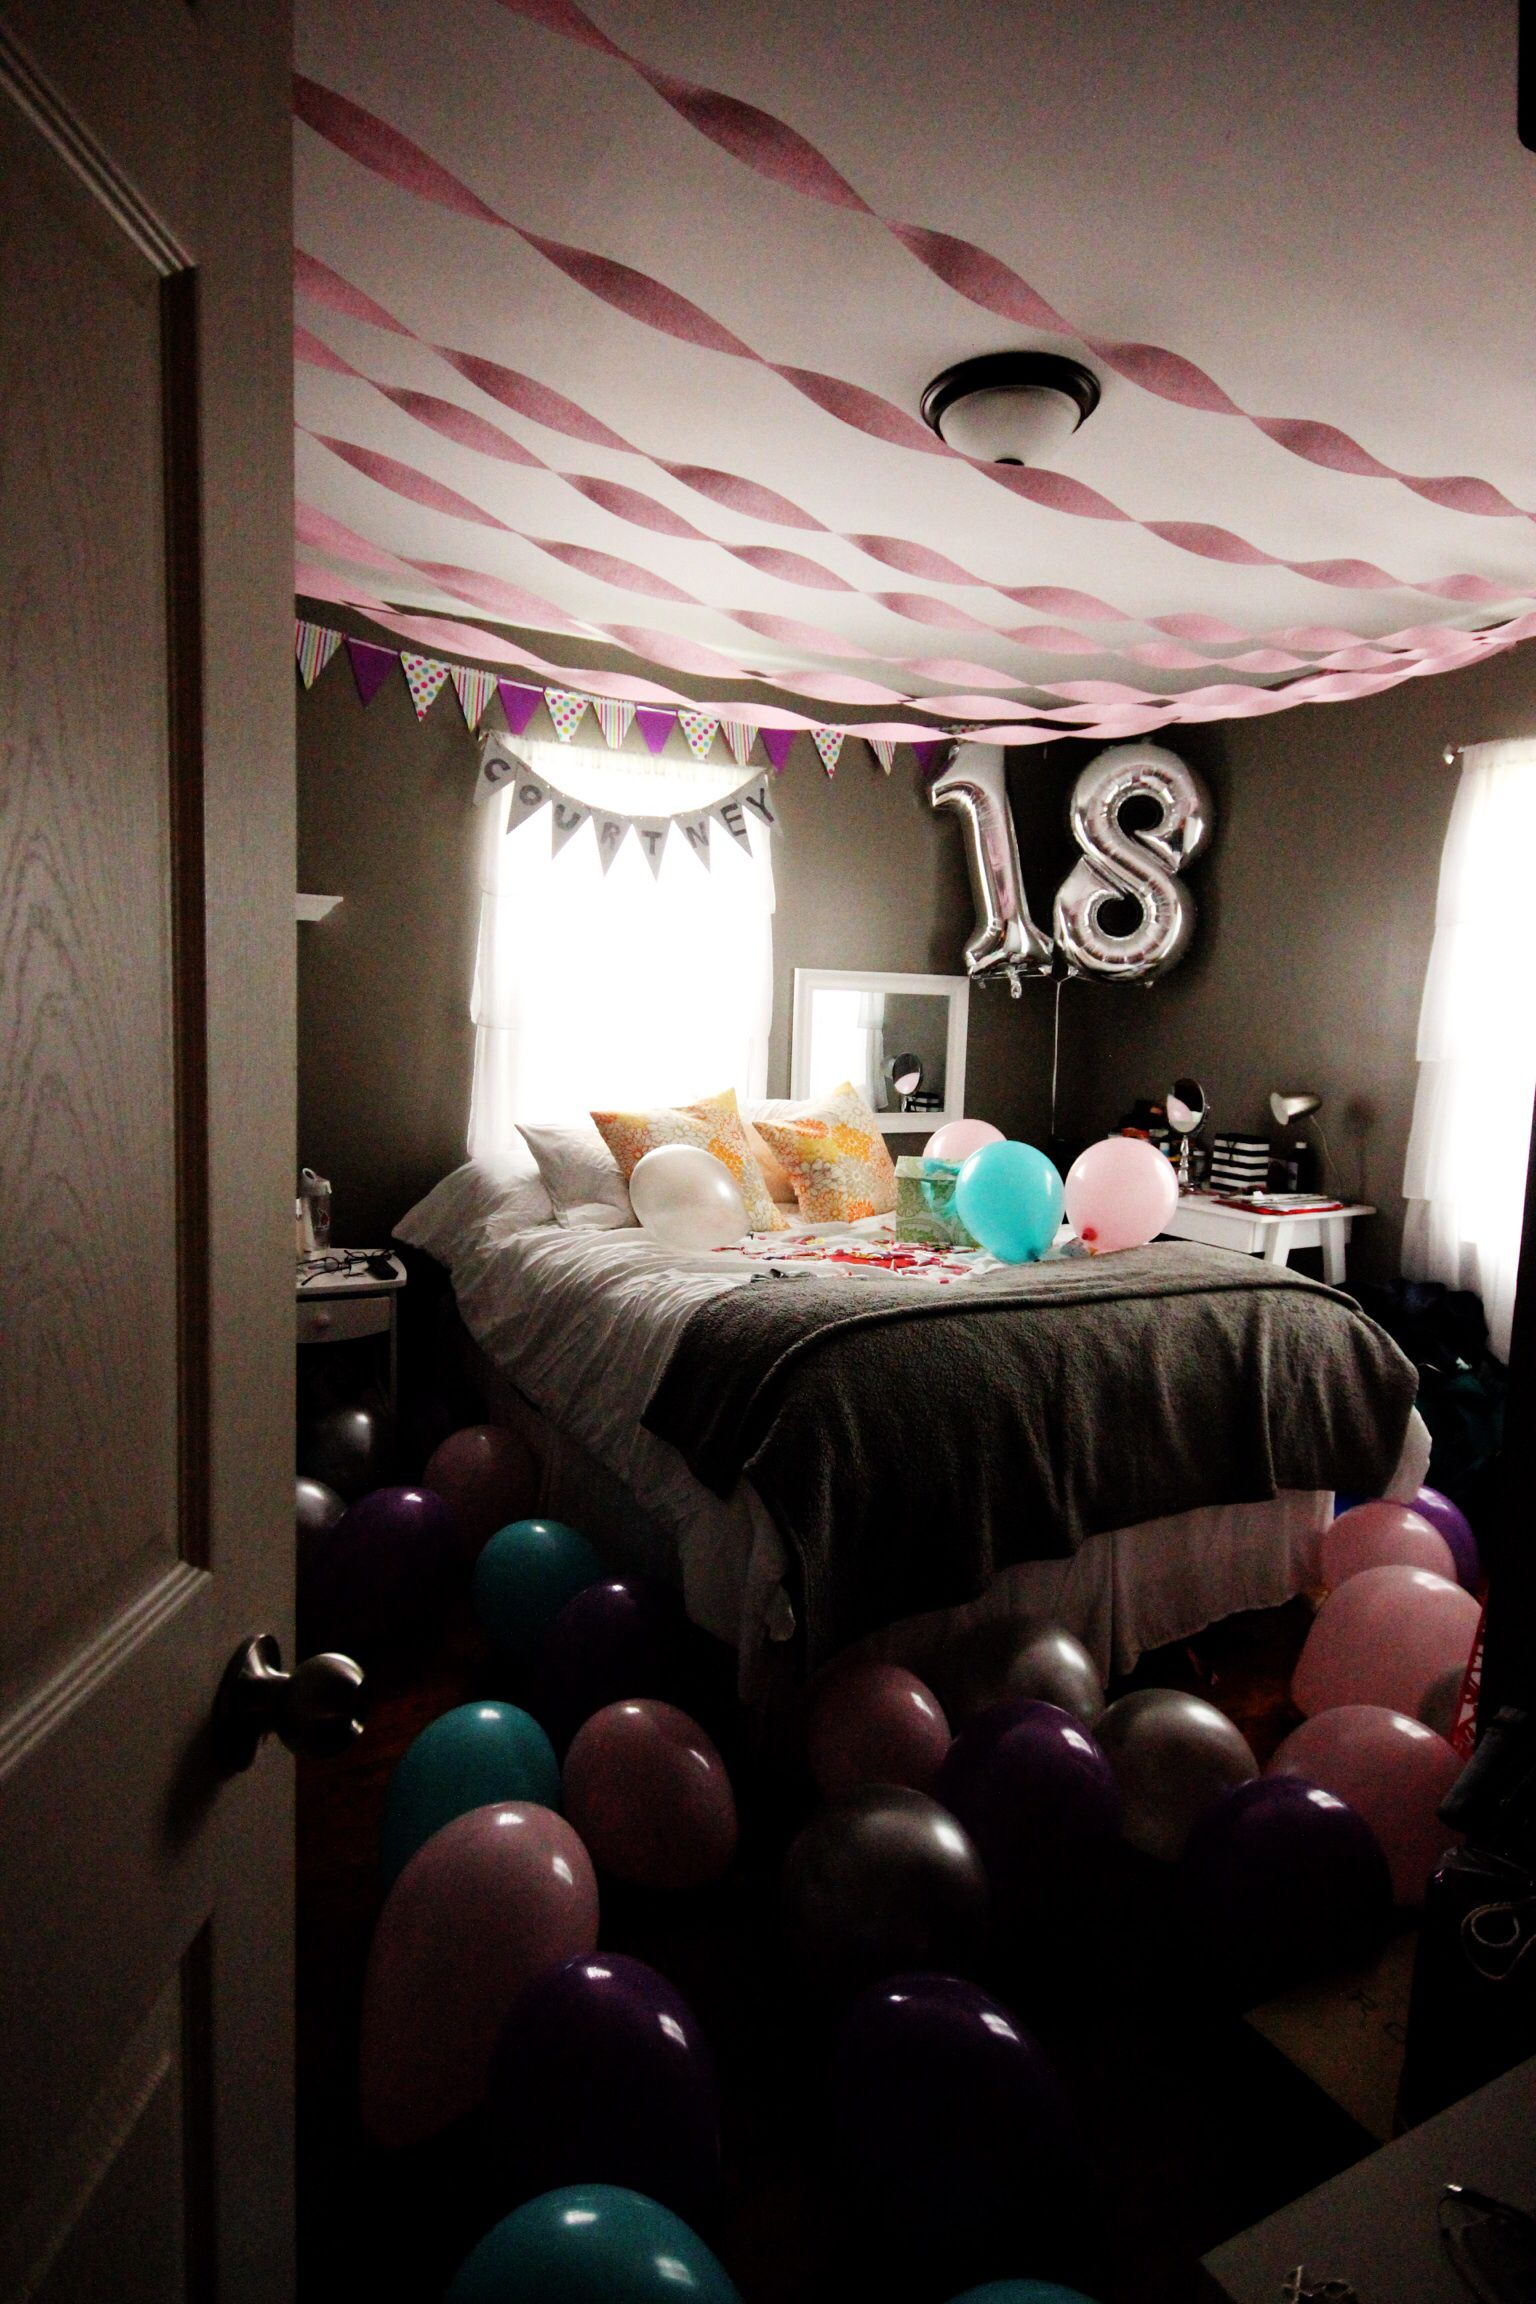 Bedroom surprise for birthday it 39 s me kiersten marie for Bedroom ideas 18 year old